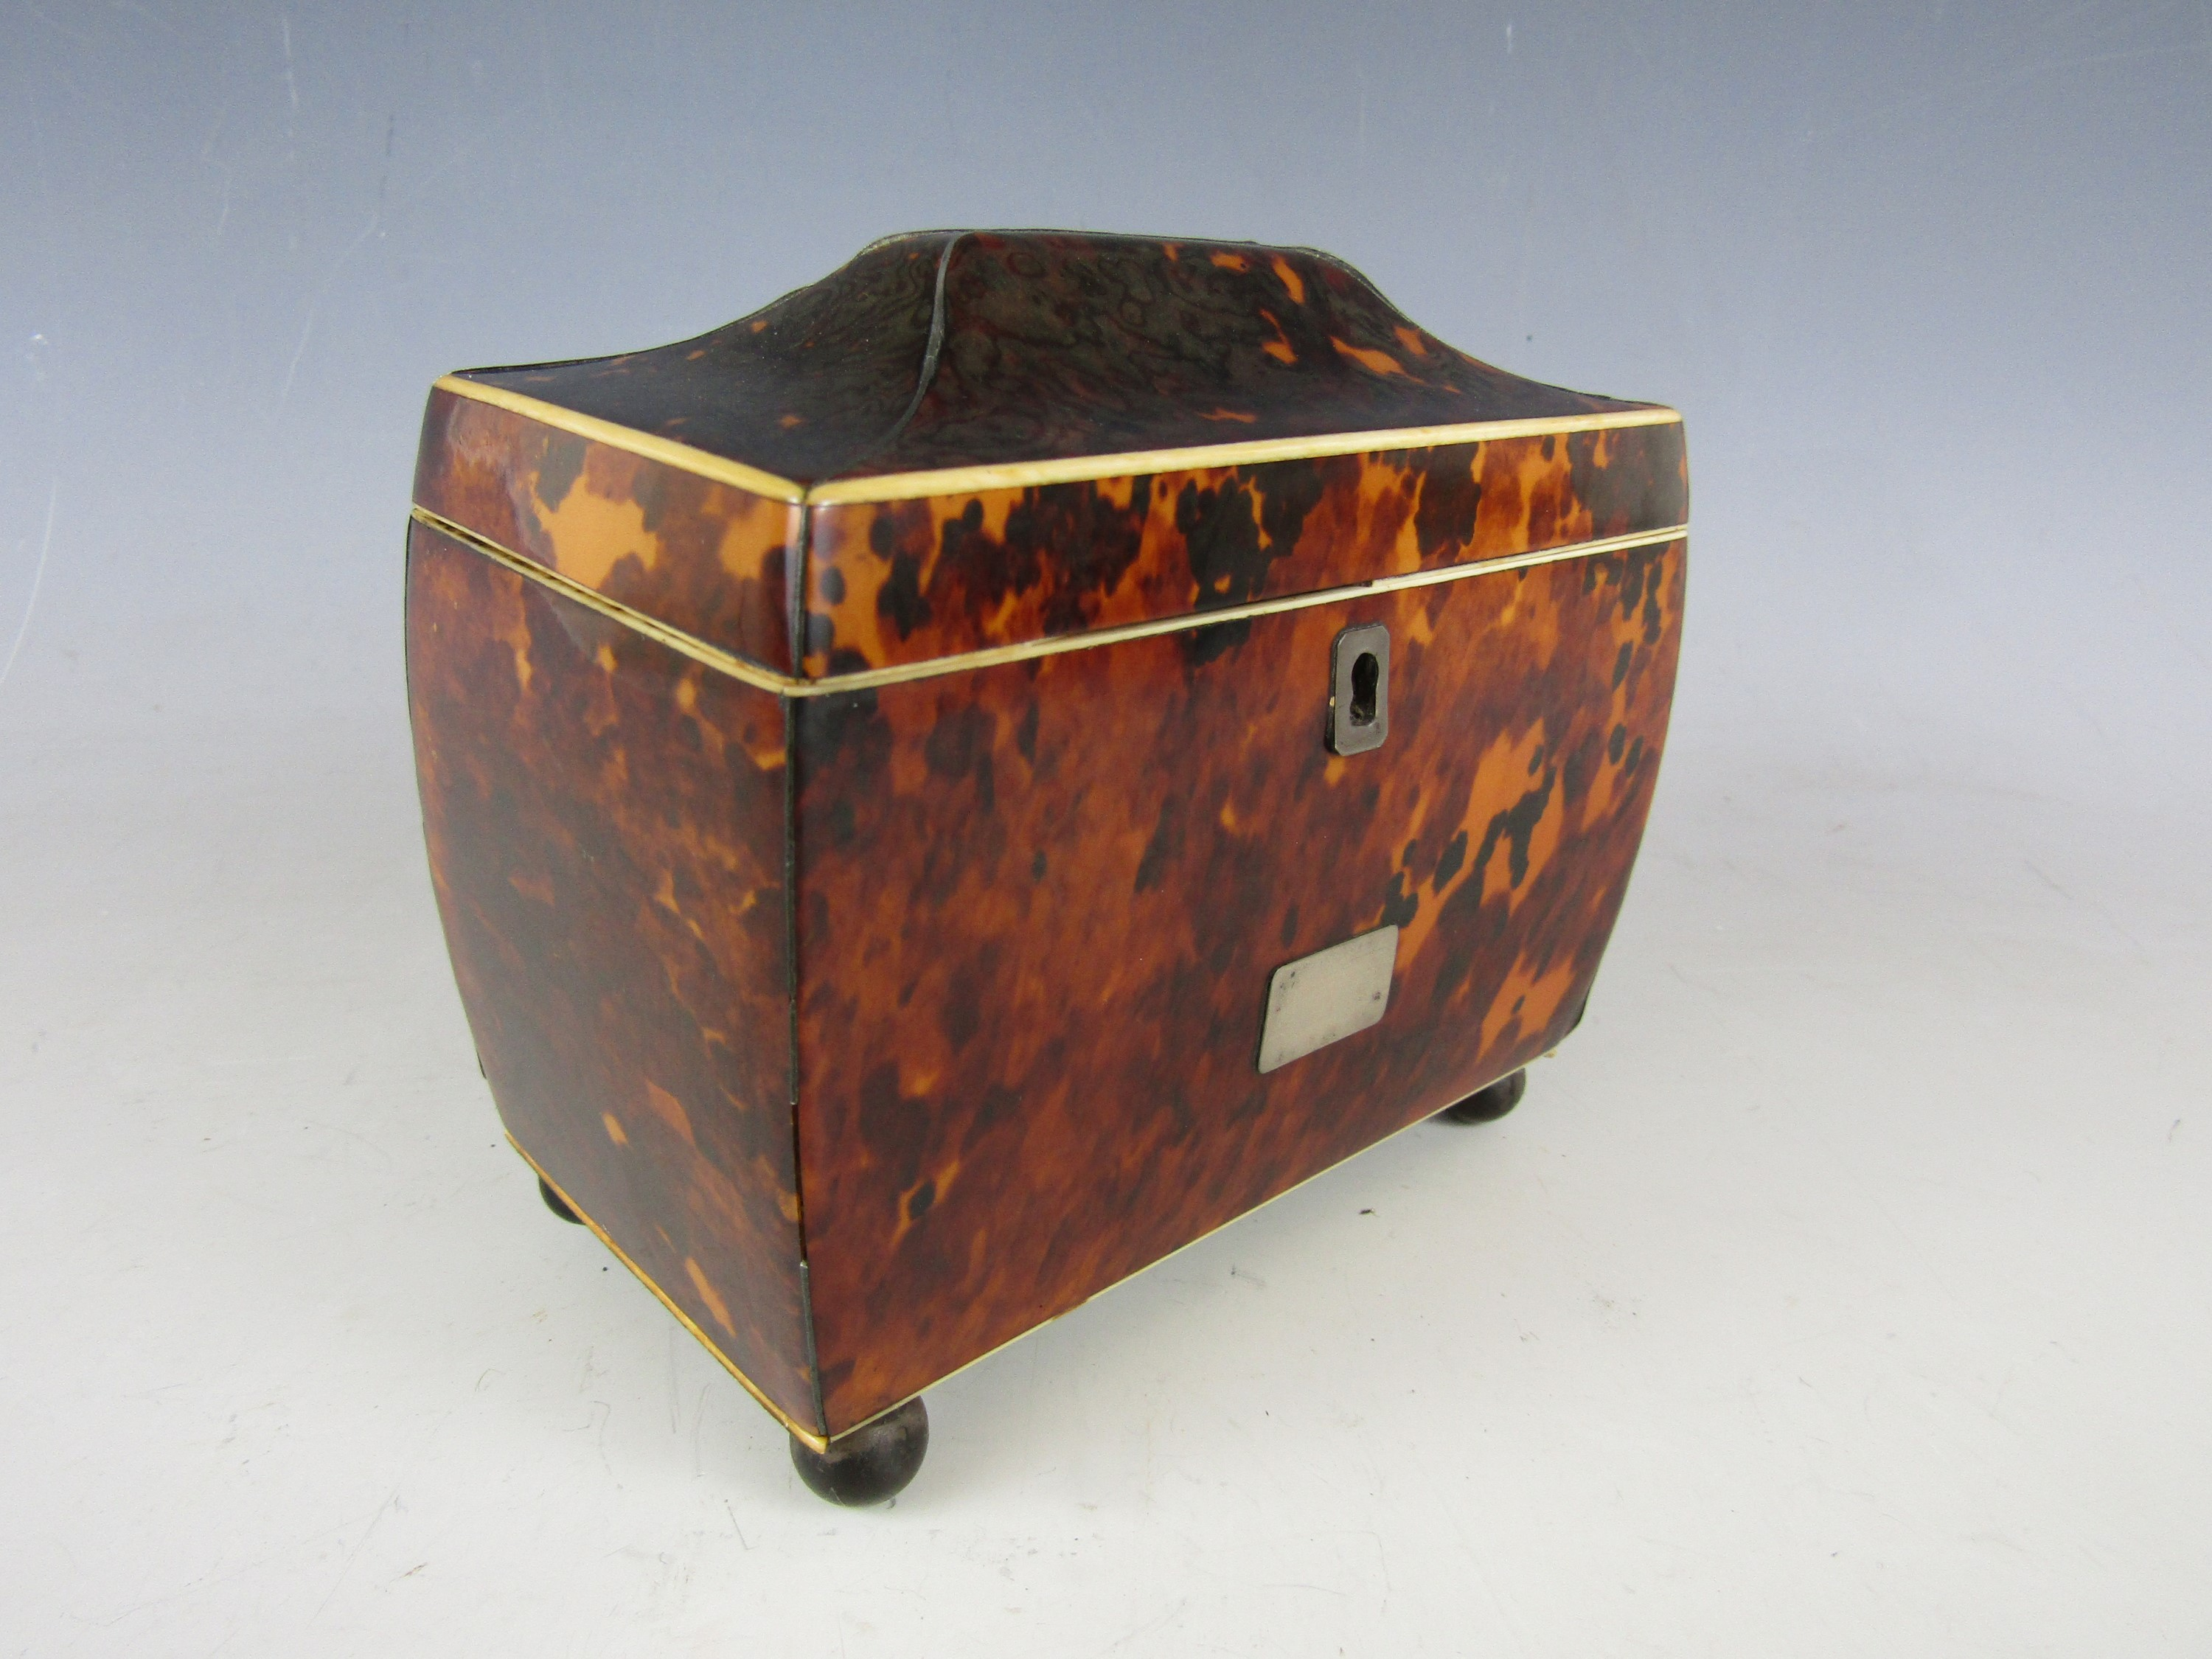 Lot 13 - A Regency tortoiseshell tea caddy, of sarcophagus form with ivory and silver string inlay, opening